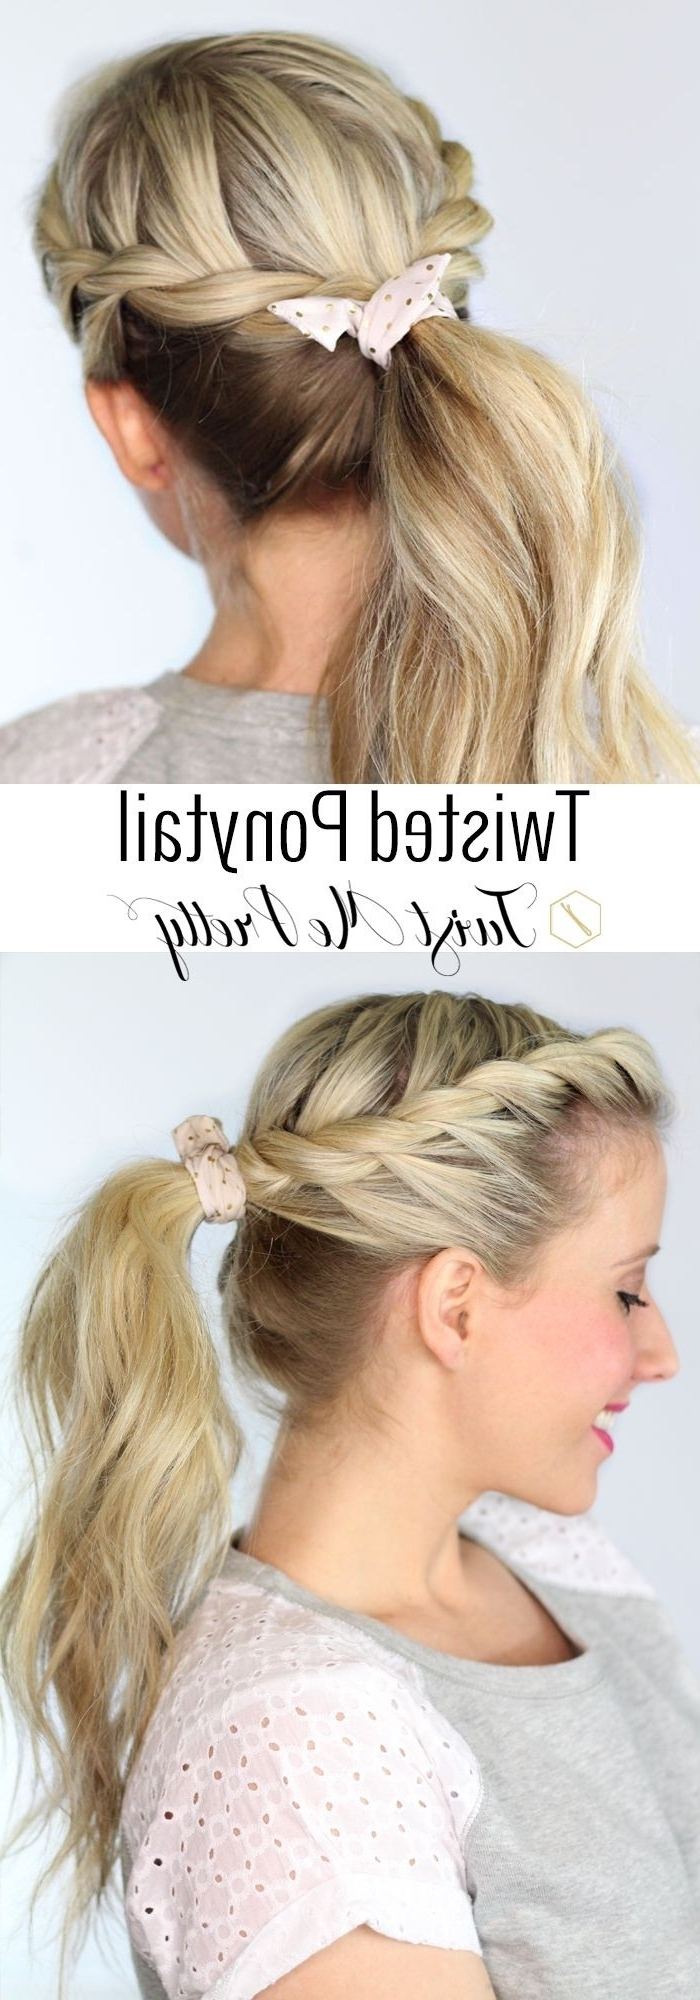 Top 10 Fashionable Ponytail Hairstyles For Summer  (View 16 of 20)